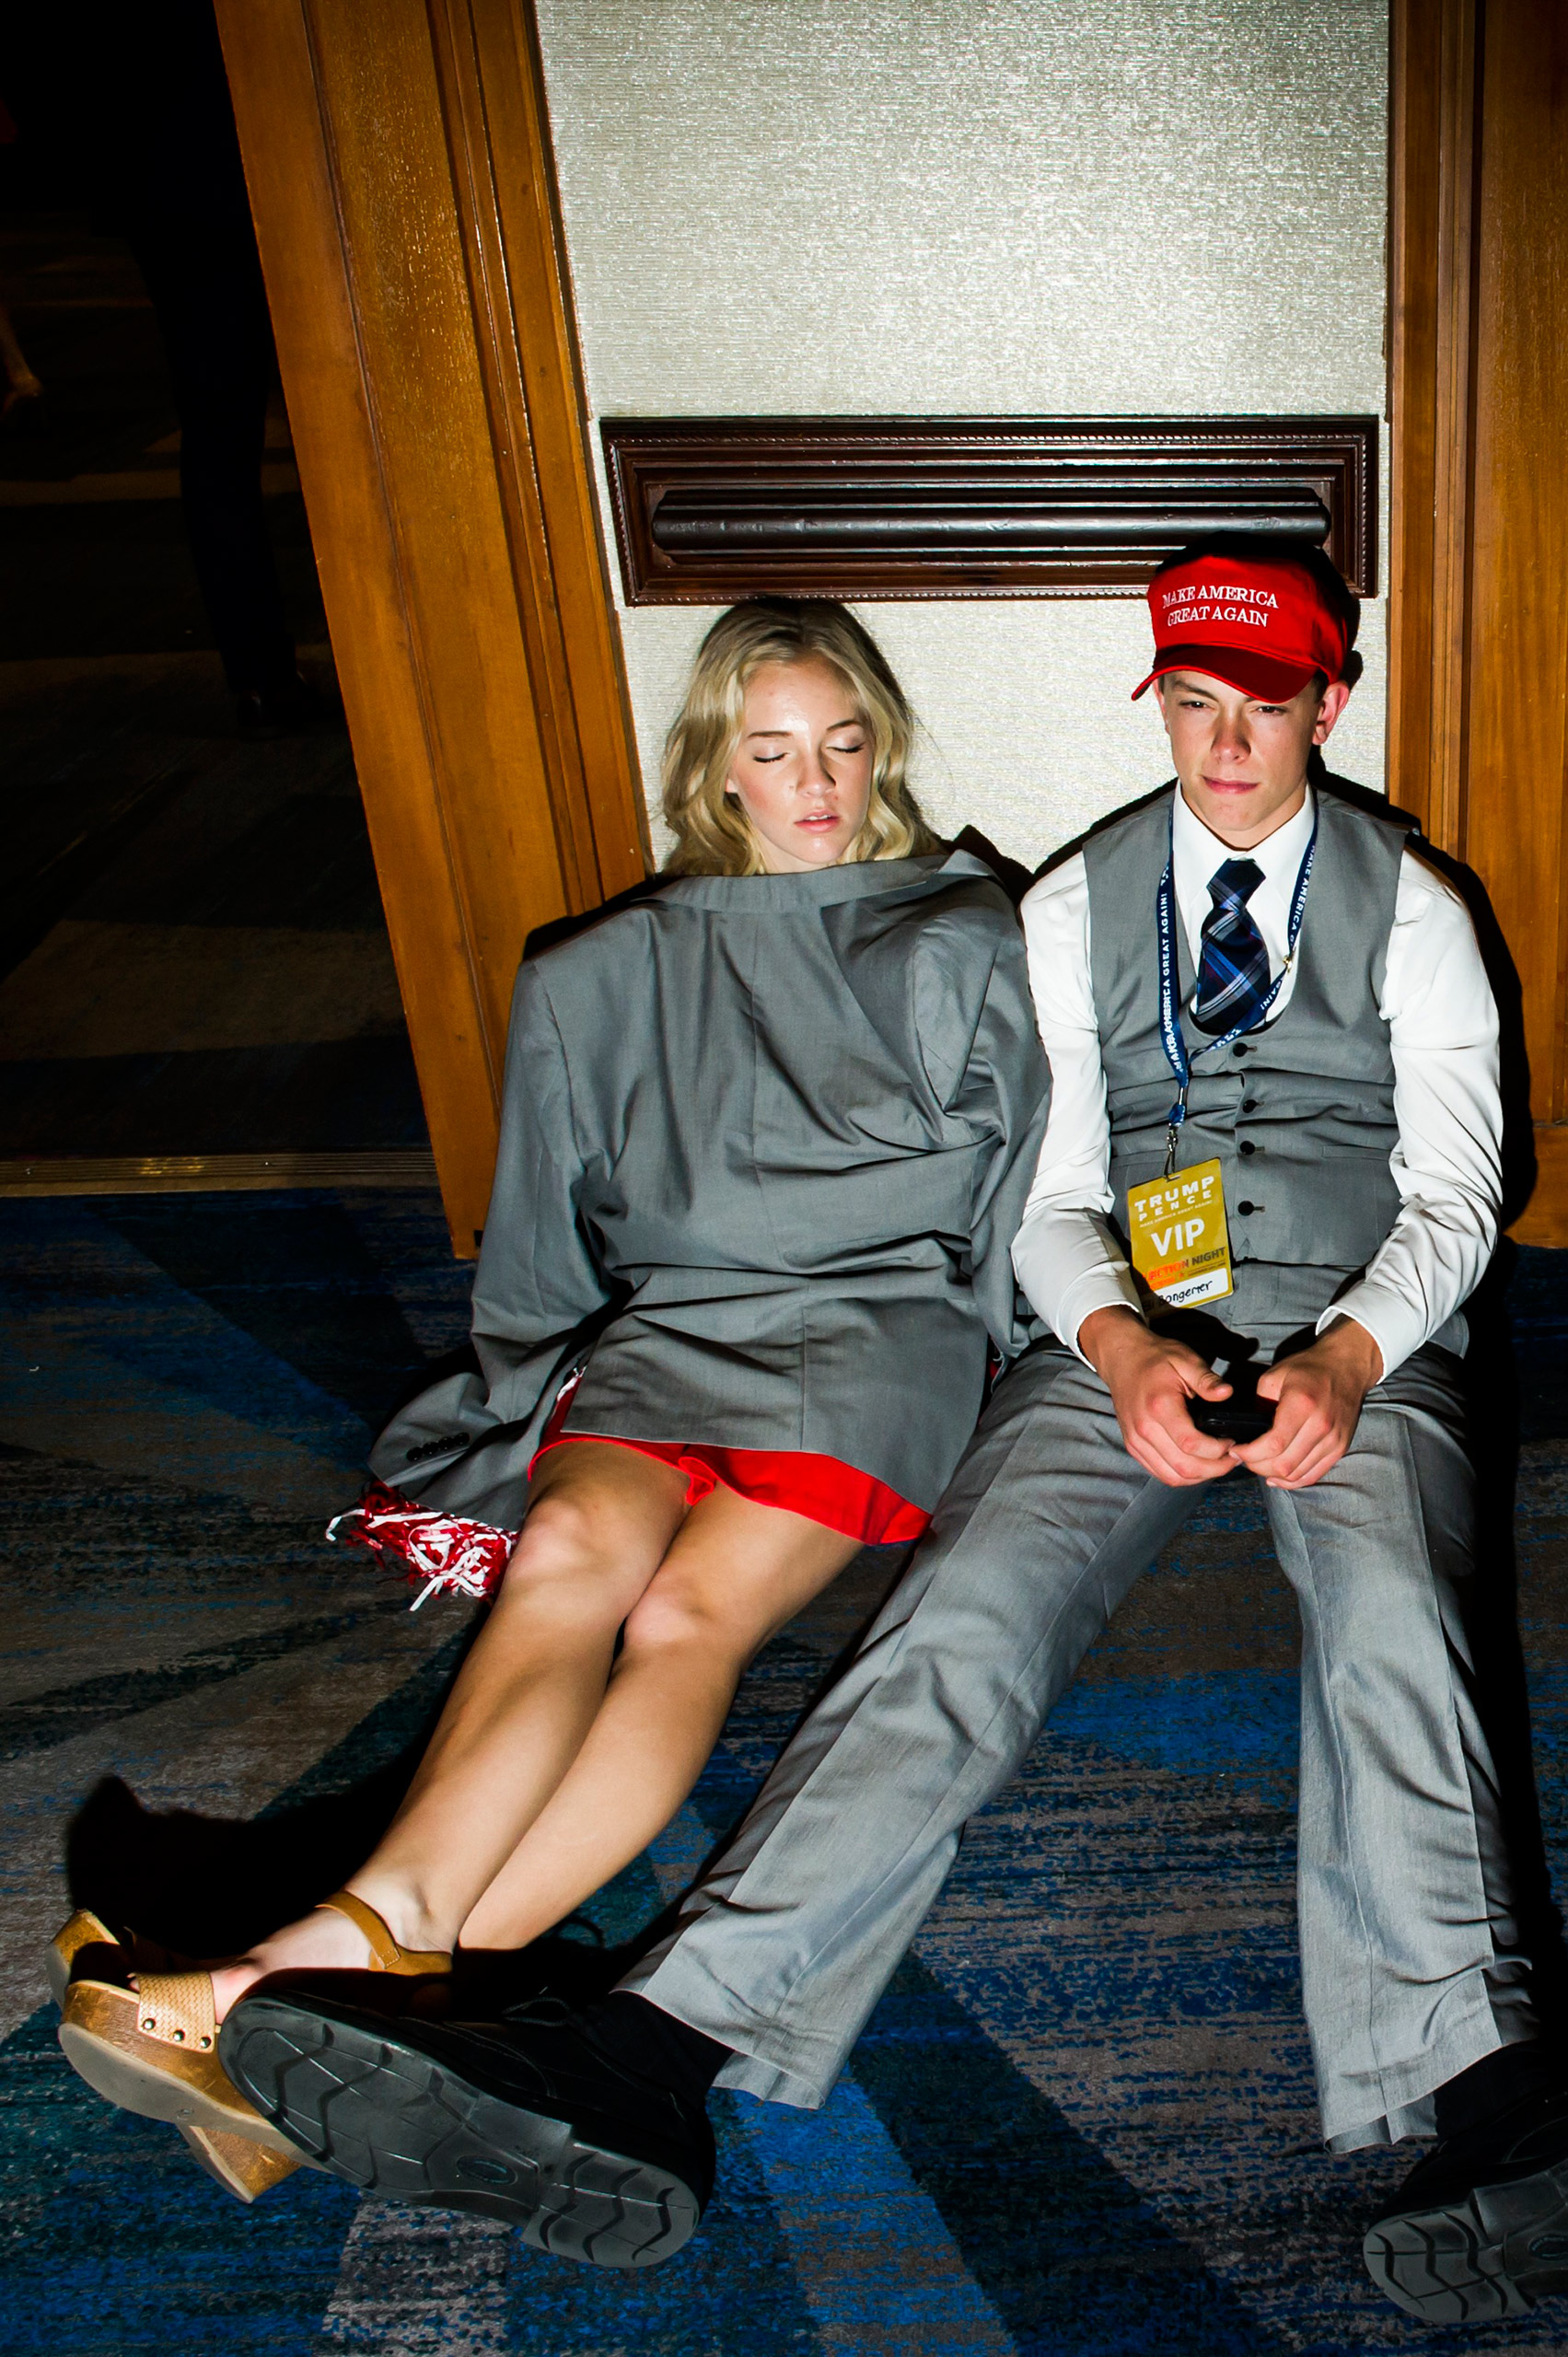 Scenes from President-elect Donald Trump's Victory Party on Tuesday, Nov. 8, 2016 in New York's Manhattan borough.From  Inside Donald Trump's Election Night Celebration